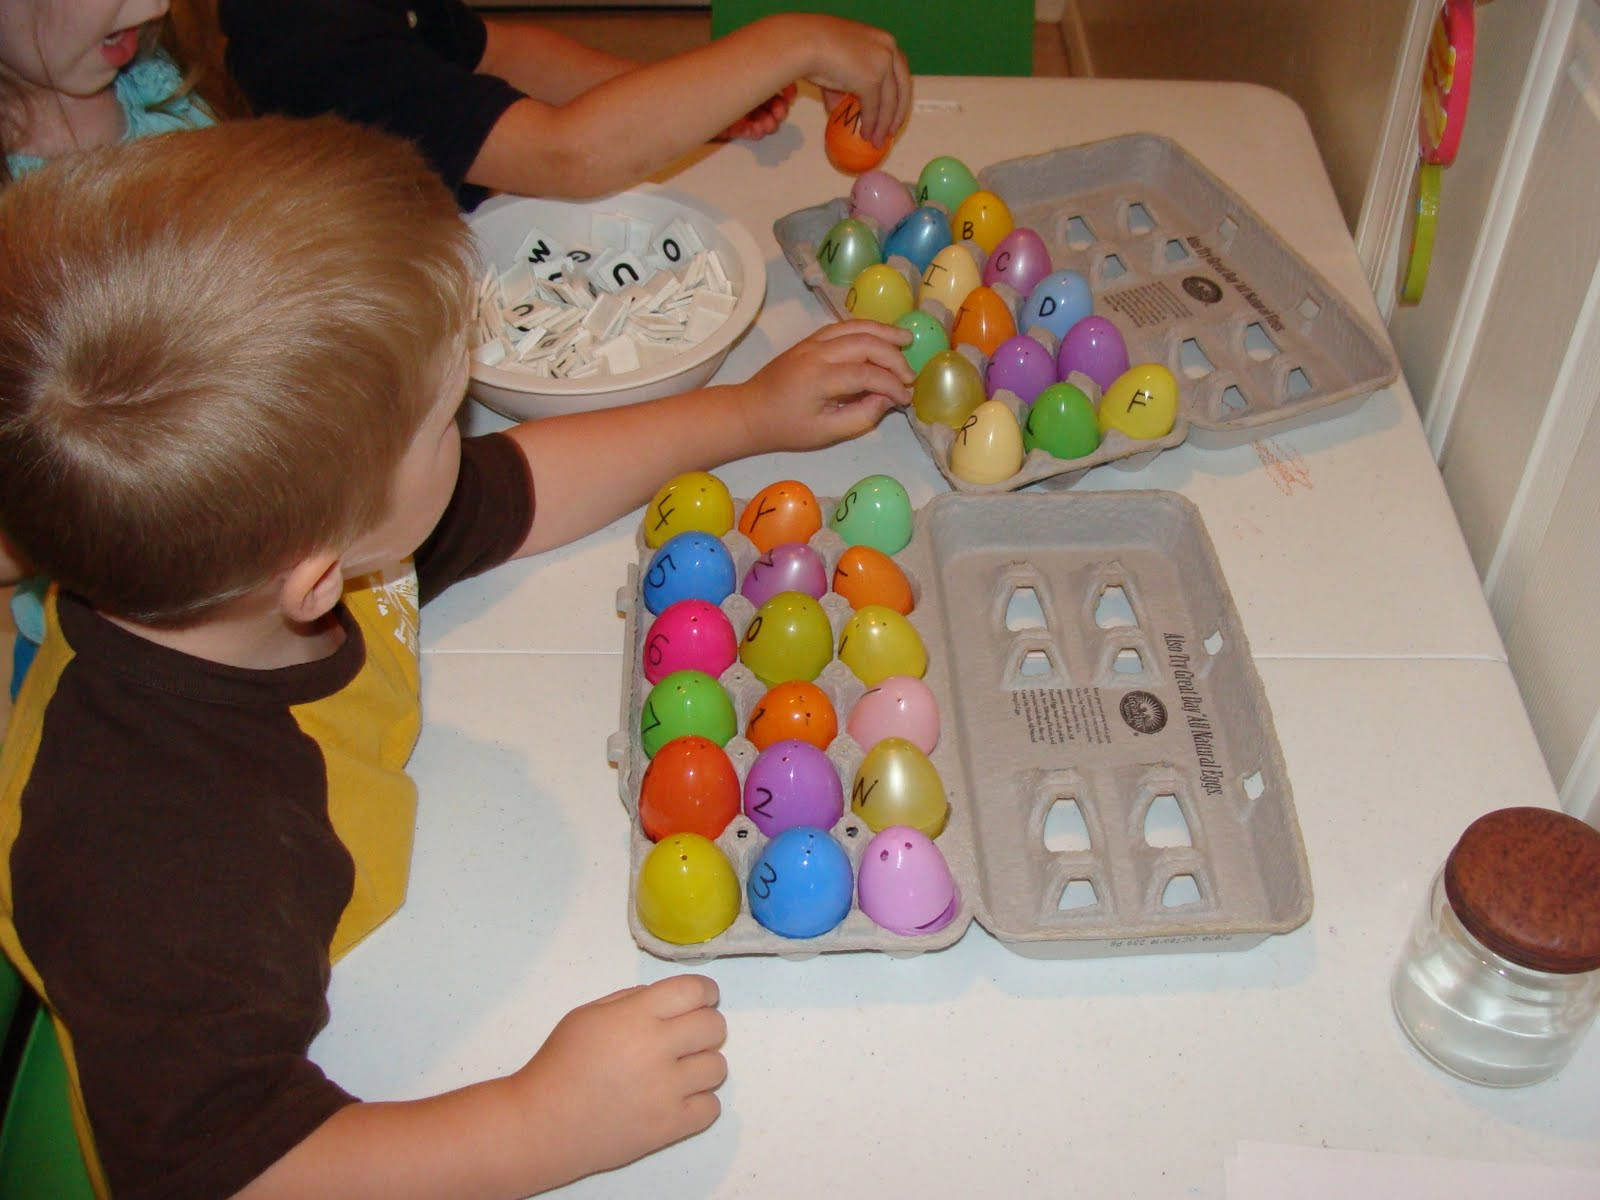 Easter Games For Kids Indoor  My Little Gems Easter Party Activities for Kids